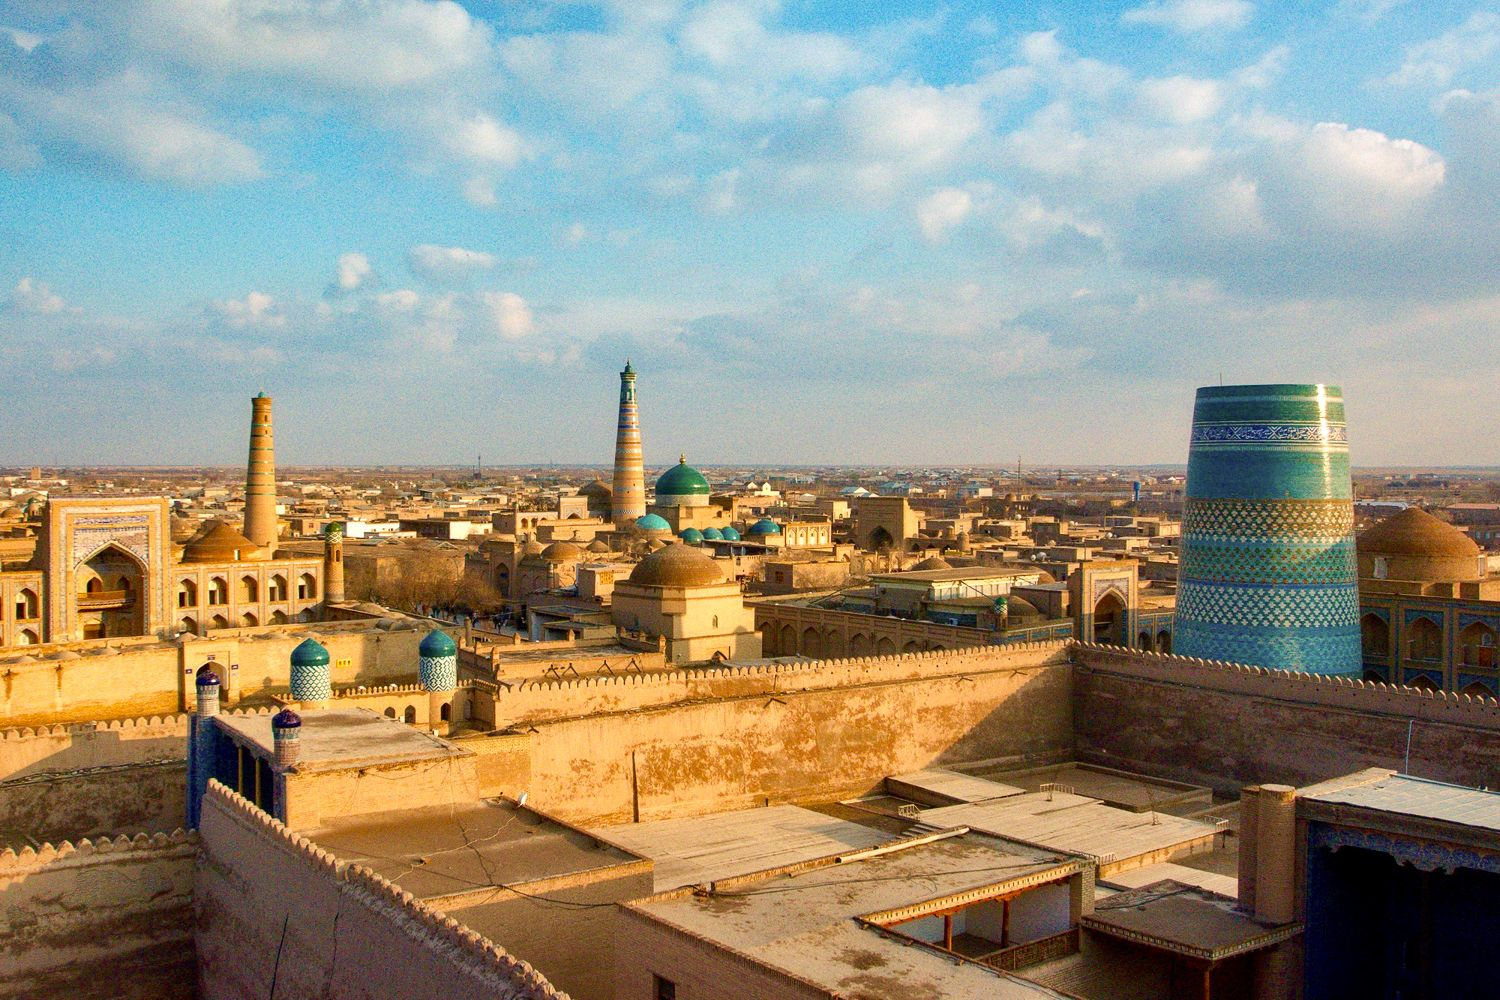 Rooftop view of Khiva city, travel Uzbekistan, central asia